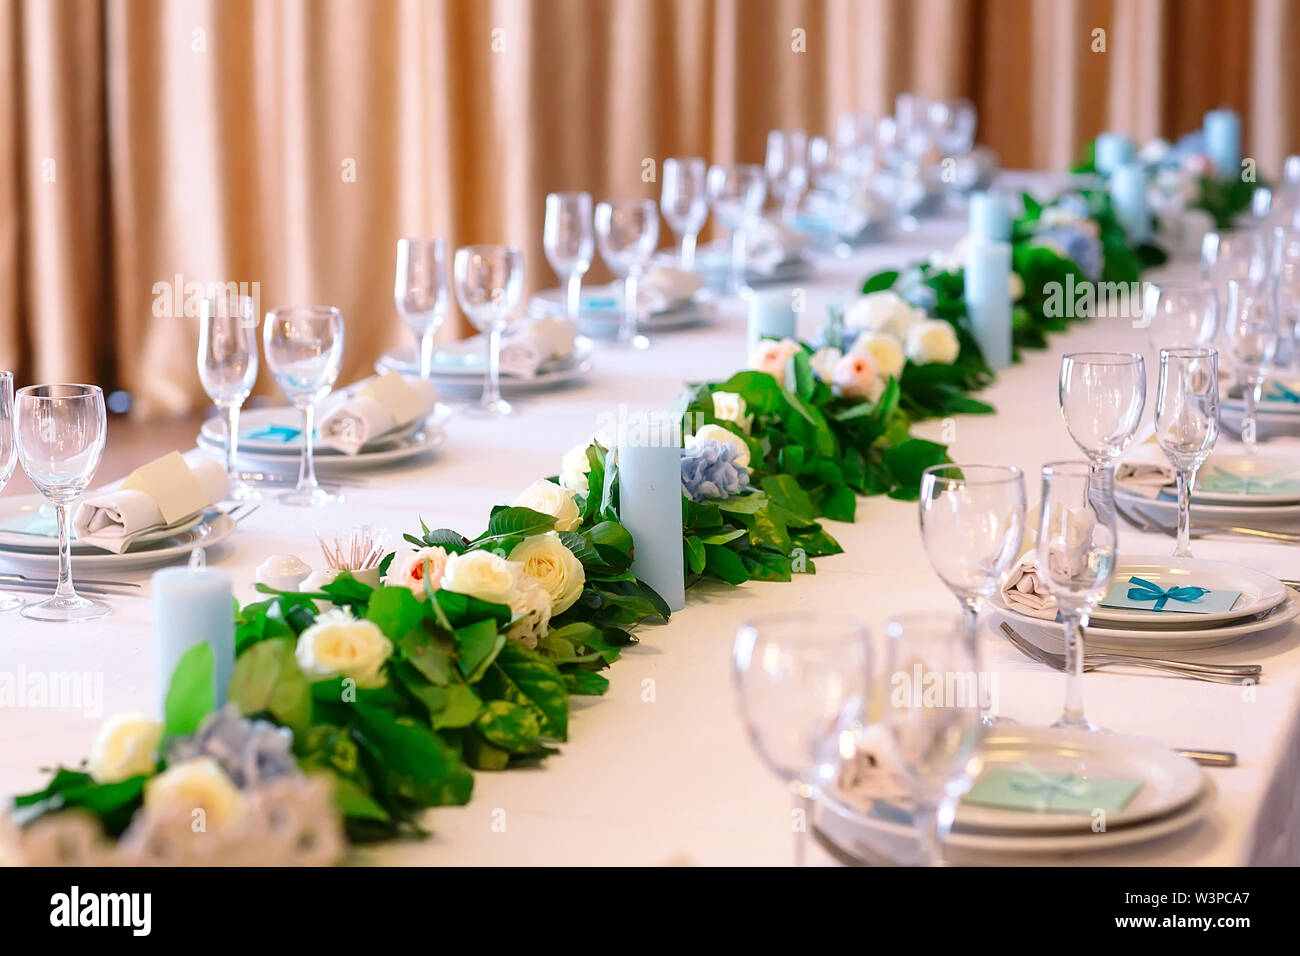 Wedding Table Settings Empty Plates And Glasses On A White Tablecloth Stock Photo Alamy